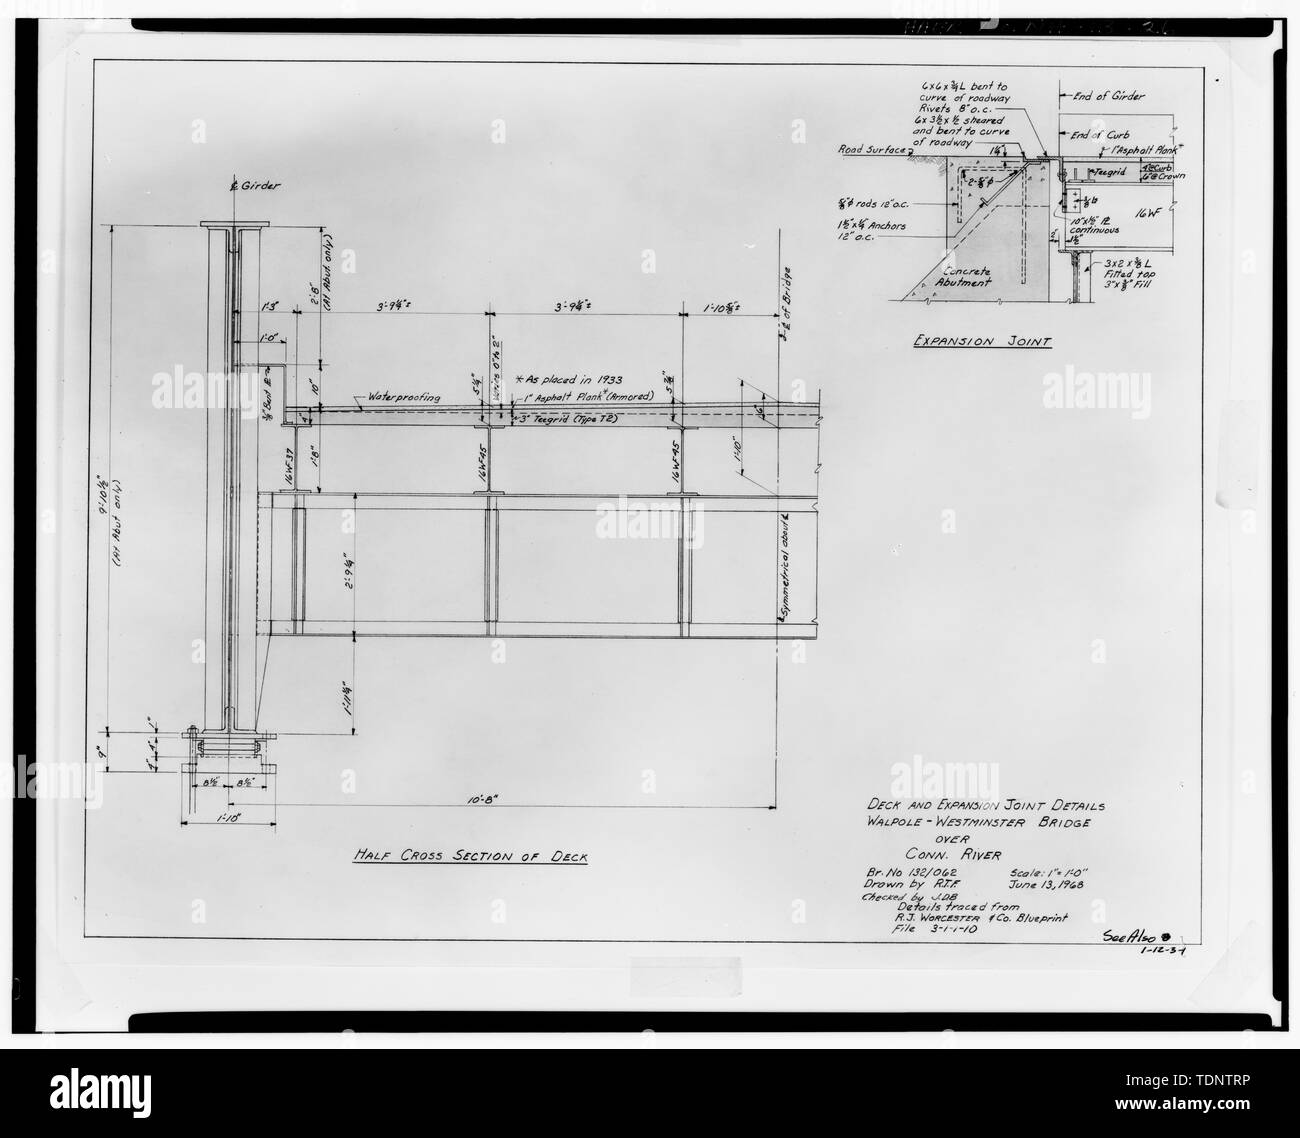 Photocopy of 1968 repair drawing for 'Walpole-Westminster Bridge Over- Connecticut River', unattributed. (Filed with N.H. Department of Transportation, Bridge Design Division plan archives, Concord, N.H.) Sheet- Deck and Expansion Joint Details June 13, 1968 - Walpole-Westminster Bridge, Spanning Connecticut River between Walpole, NH and Westminster, VT, Walpole, Cheshire County, NH - Stock Image